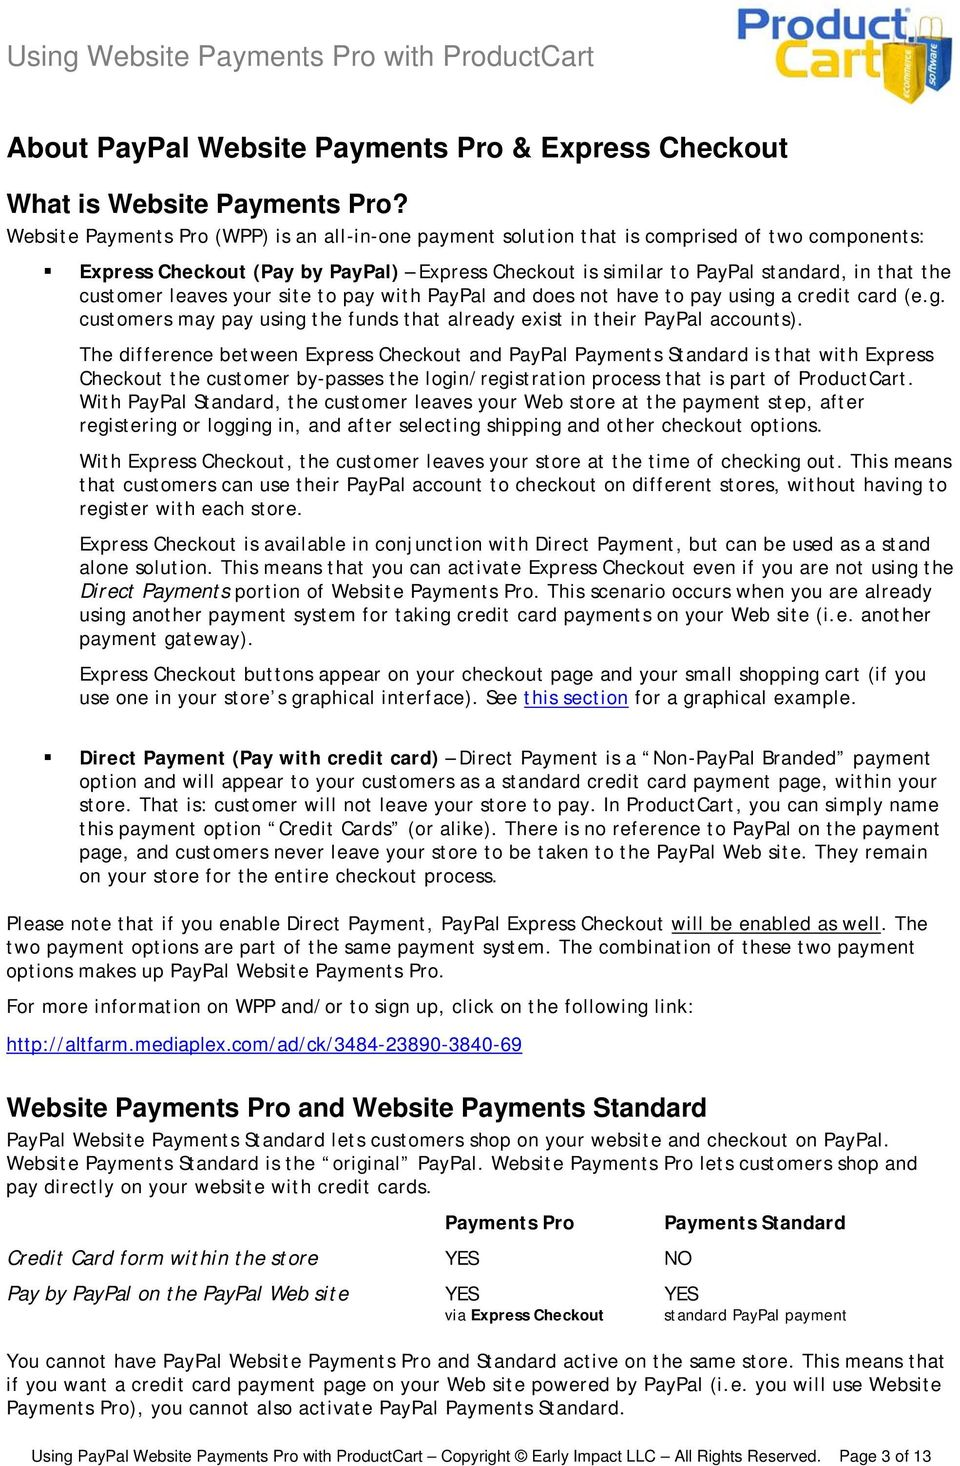 site t pay with PayPal and des nt have t pay using a credit card (e.g. custmers may pay using the funds that already exist in their PayPal accunts).